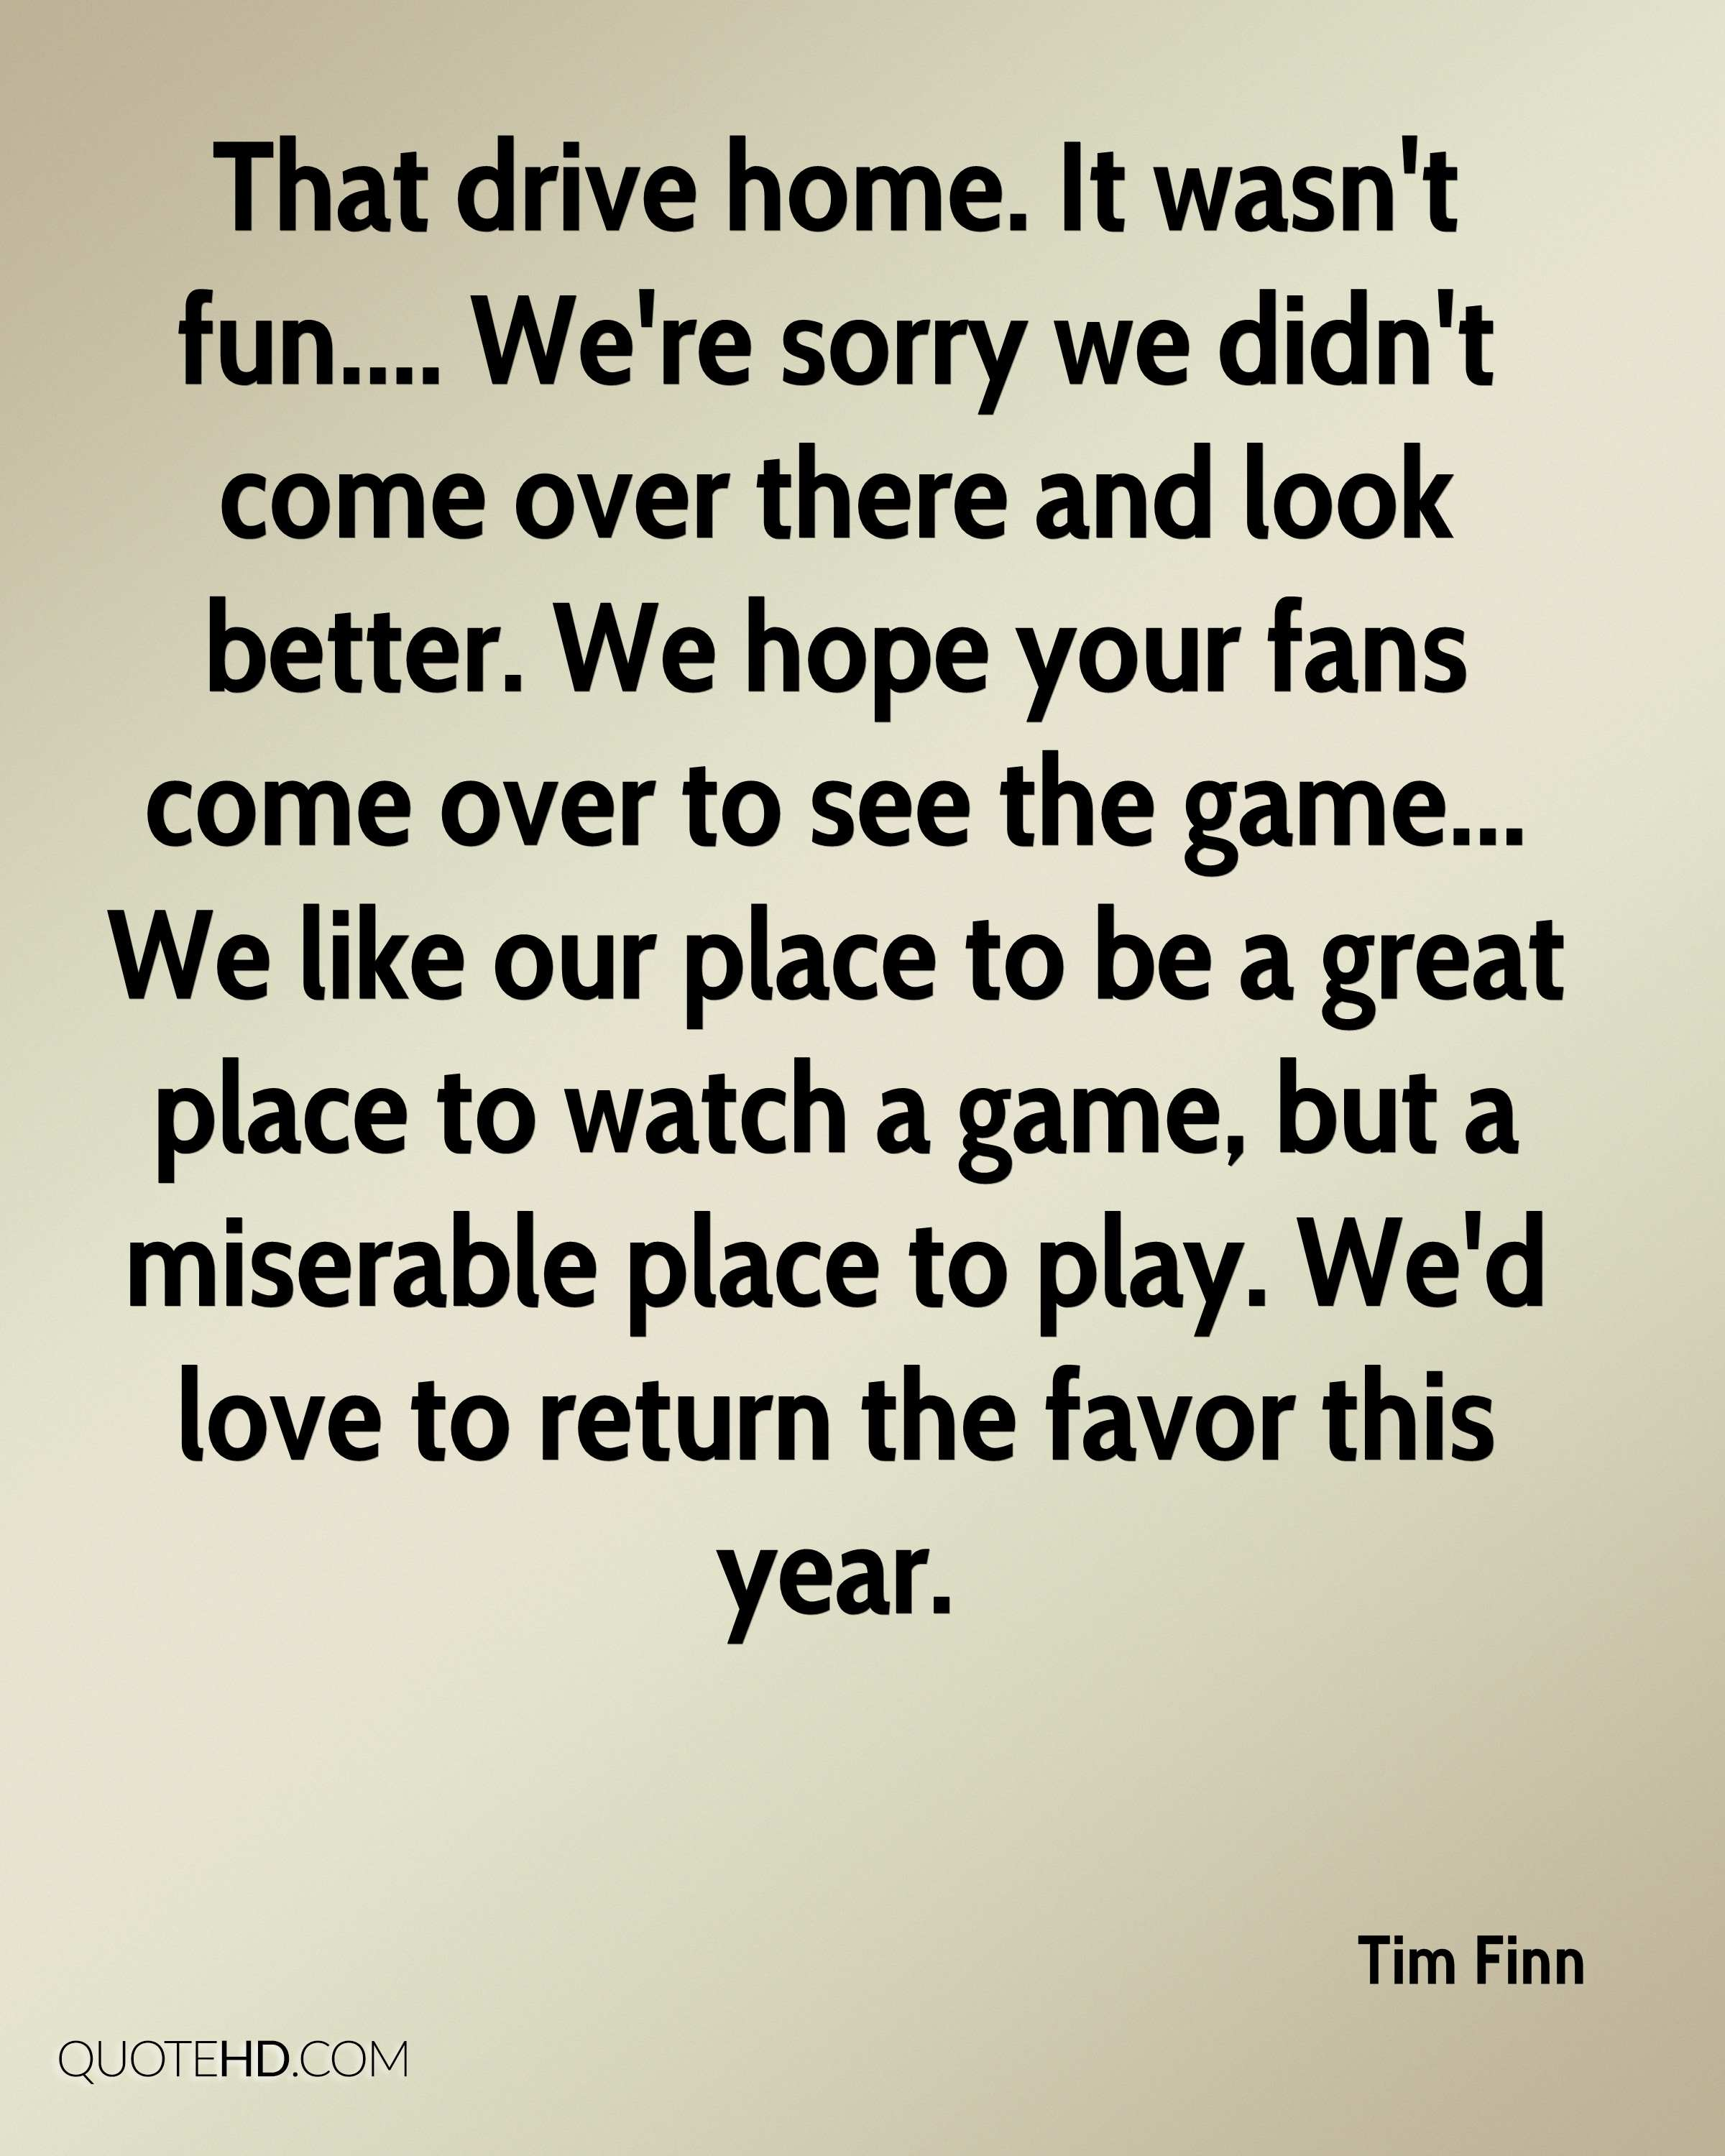 That drive home. It wasn't fun.... We're sorry we didn't come over there and look better. We hope your fans come over to see the game... We like our place to be a great place to watch a game, but a miserable place to play. We'd love to return the favor this year.